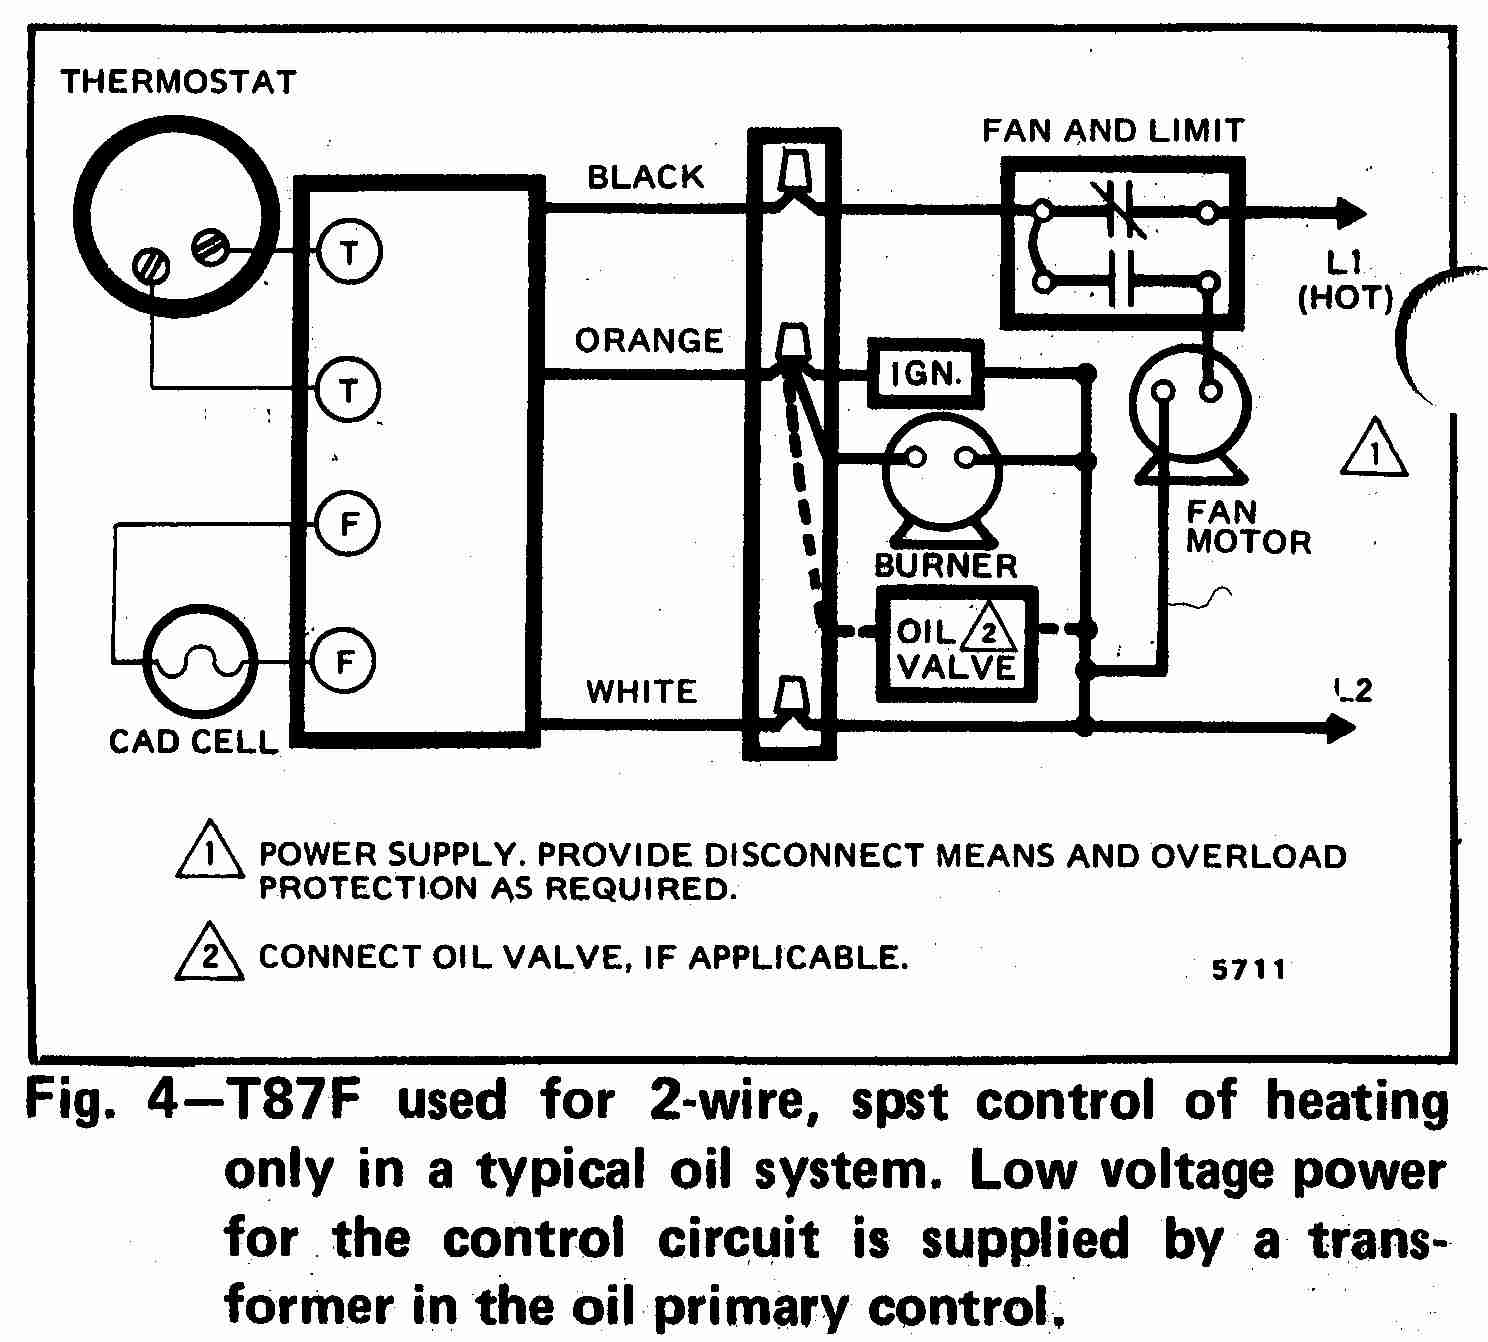 home heating thermostat wiring diagram wiring diagram database fuel oil furnace diagram heat only thermostat wiring diagram wiring diagram database carrier infinity thermostat wiring diagram home heating thermostat wiring diagram